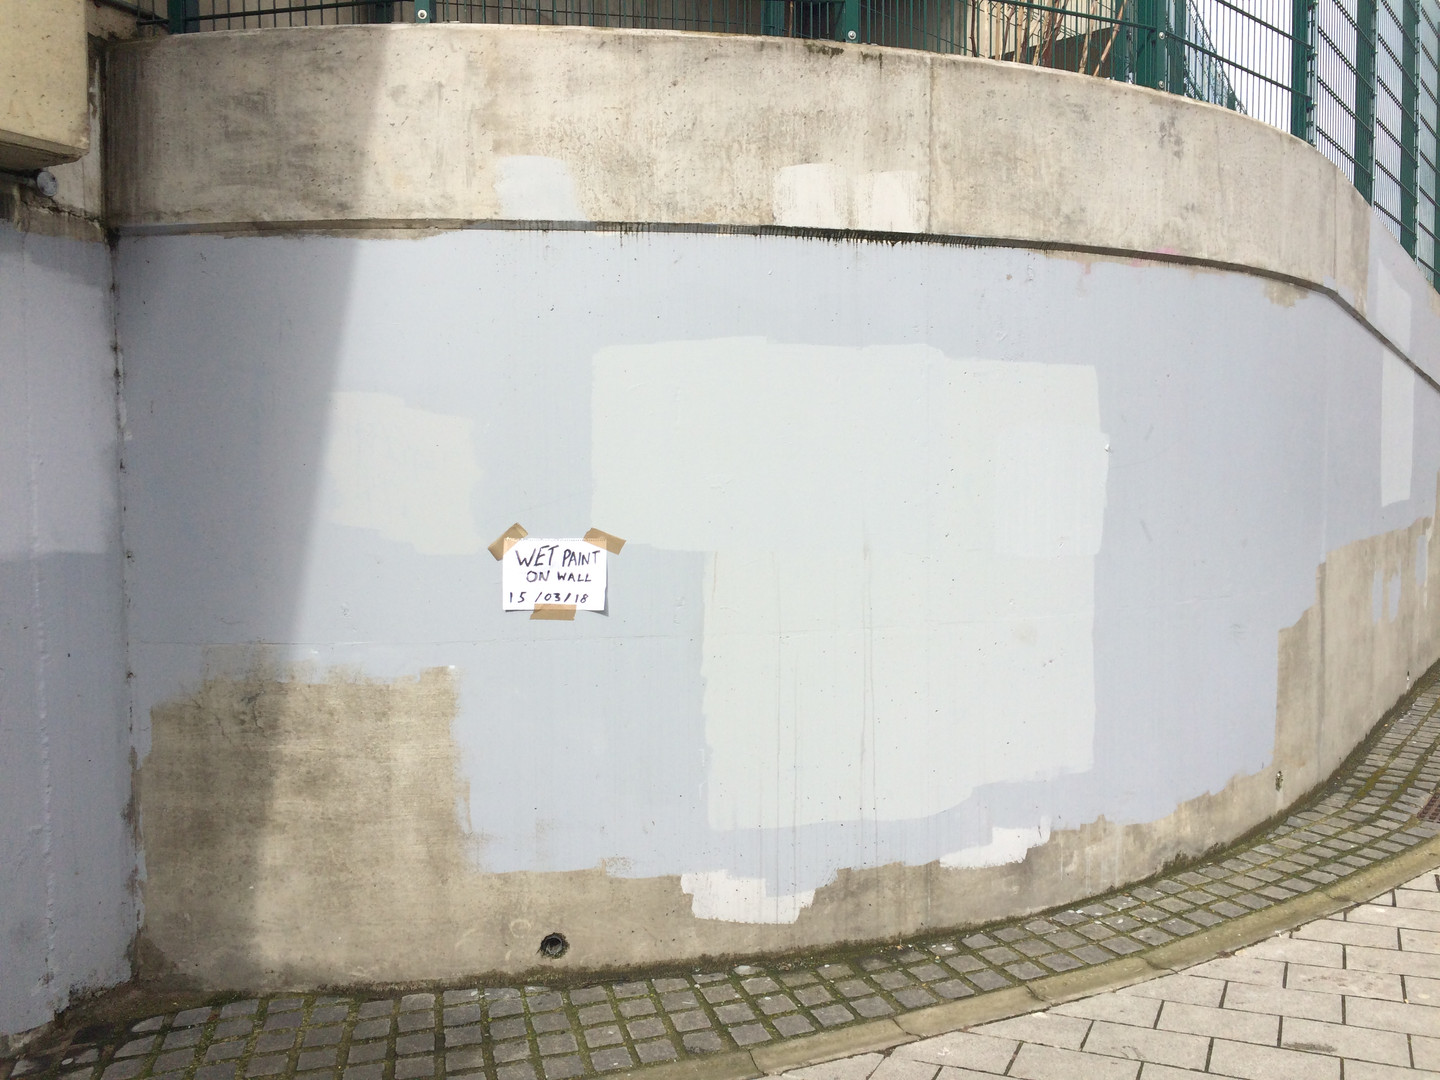 Wet Paint on Wall (Underpass), 2018